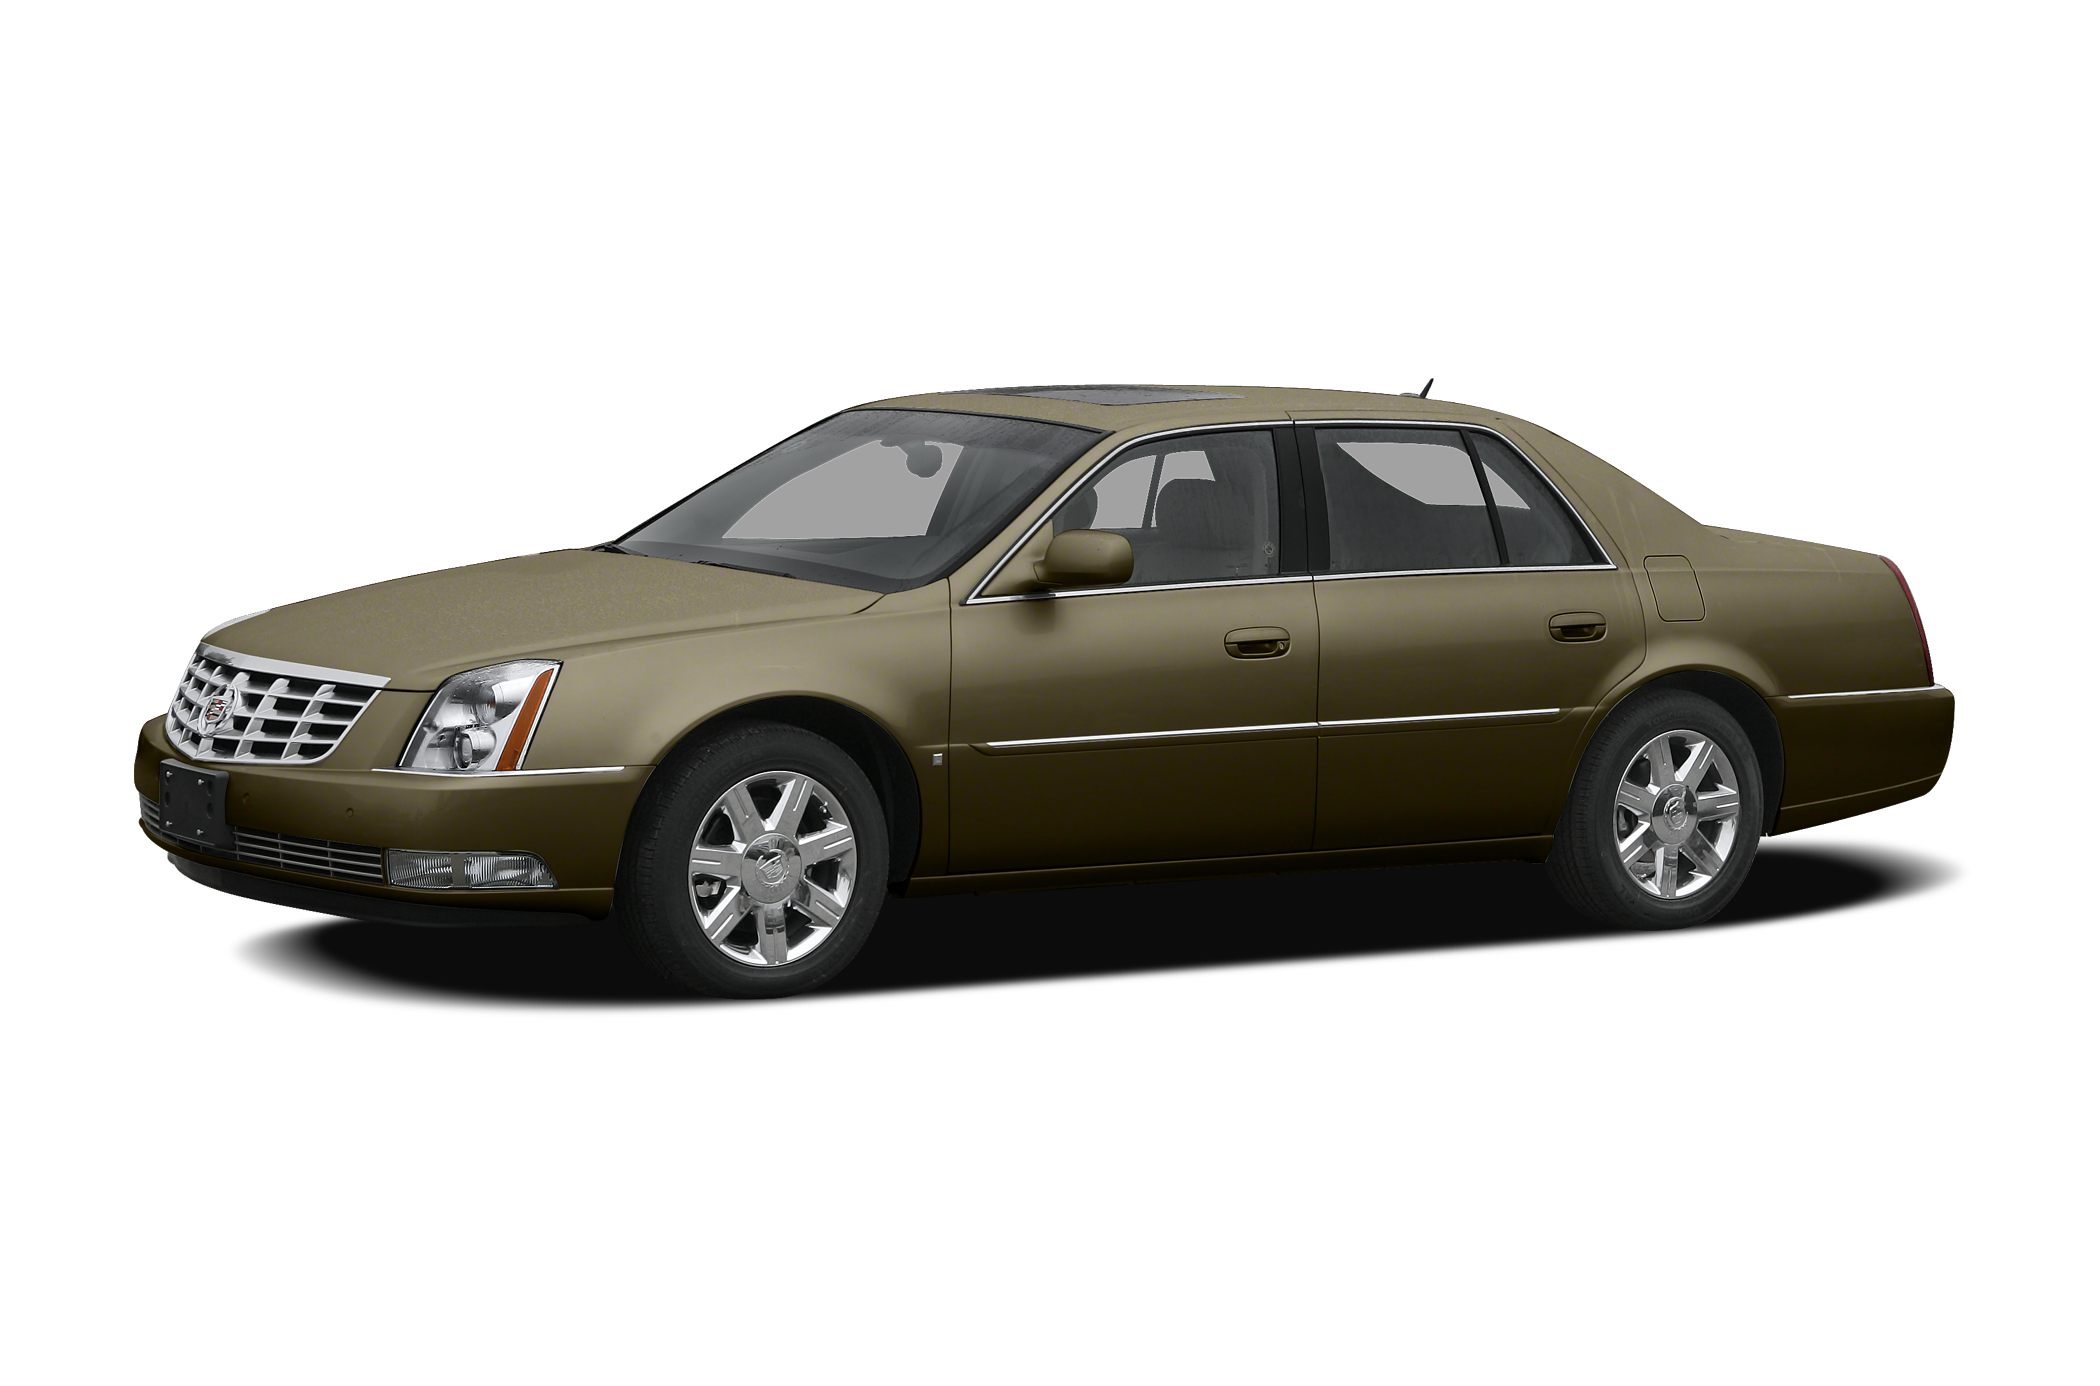 2011 Cadillac DTS Premium Collection Sedan for sale in Winchester for $22,997 with 57,130 miles